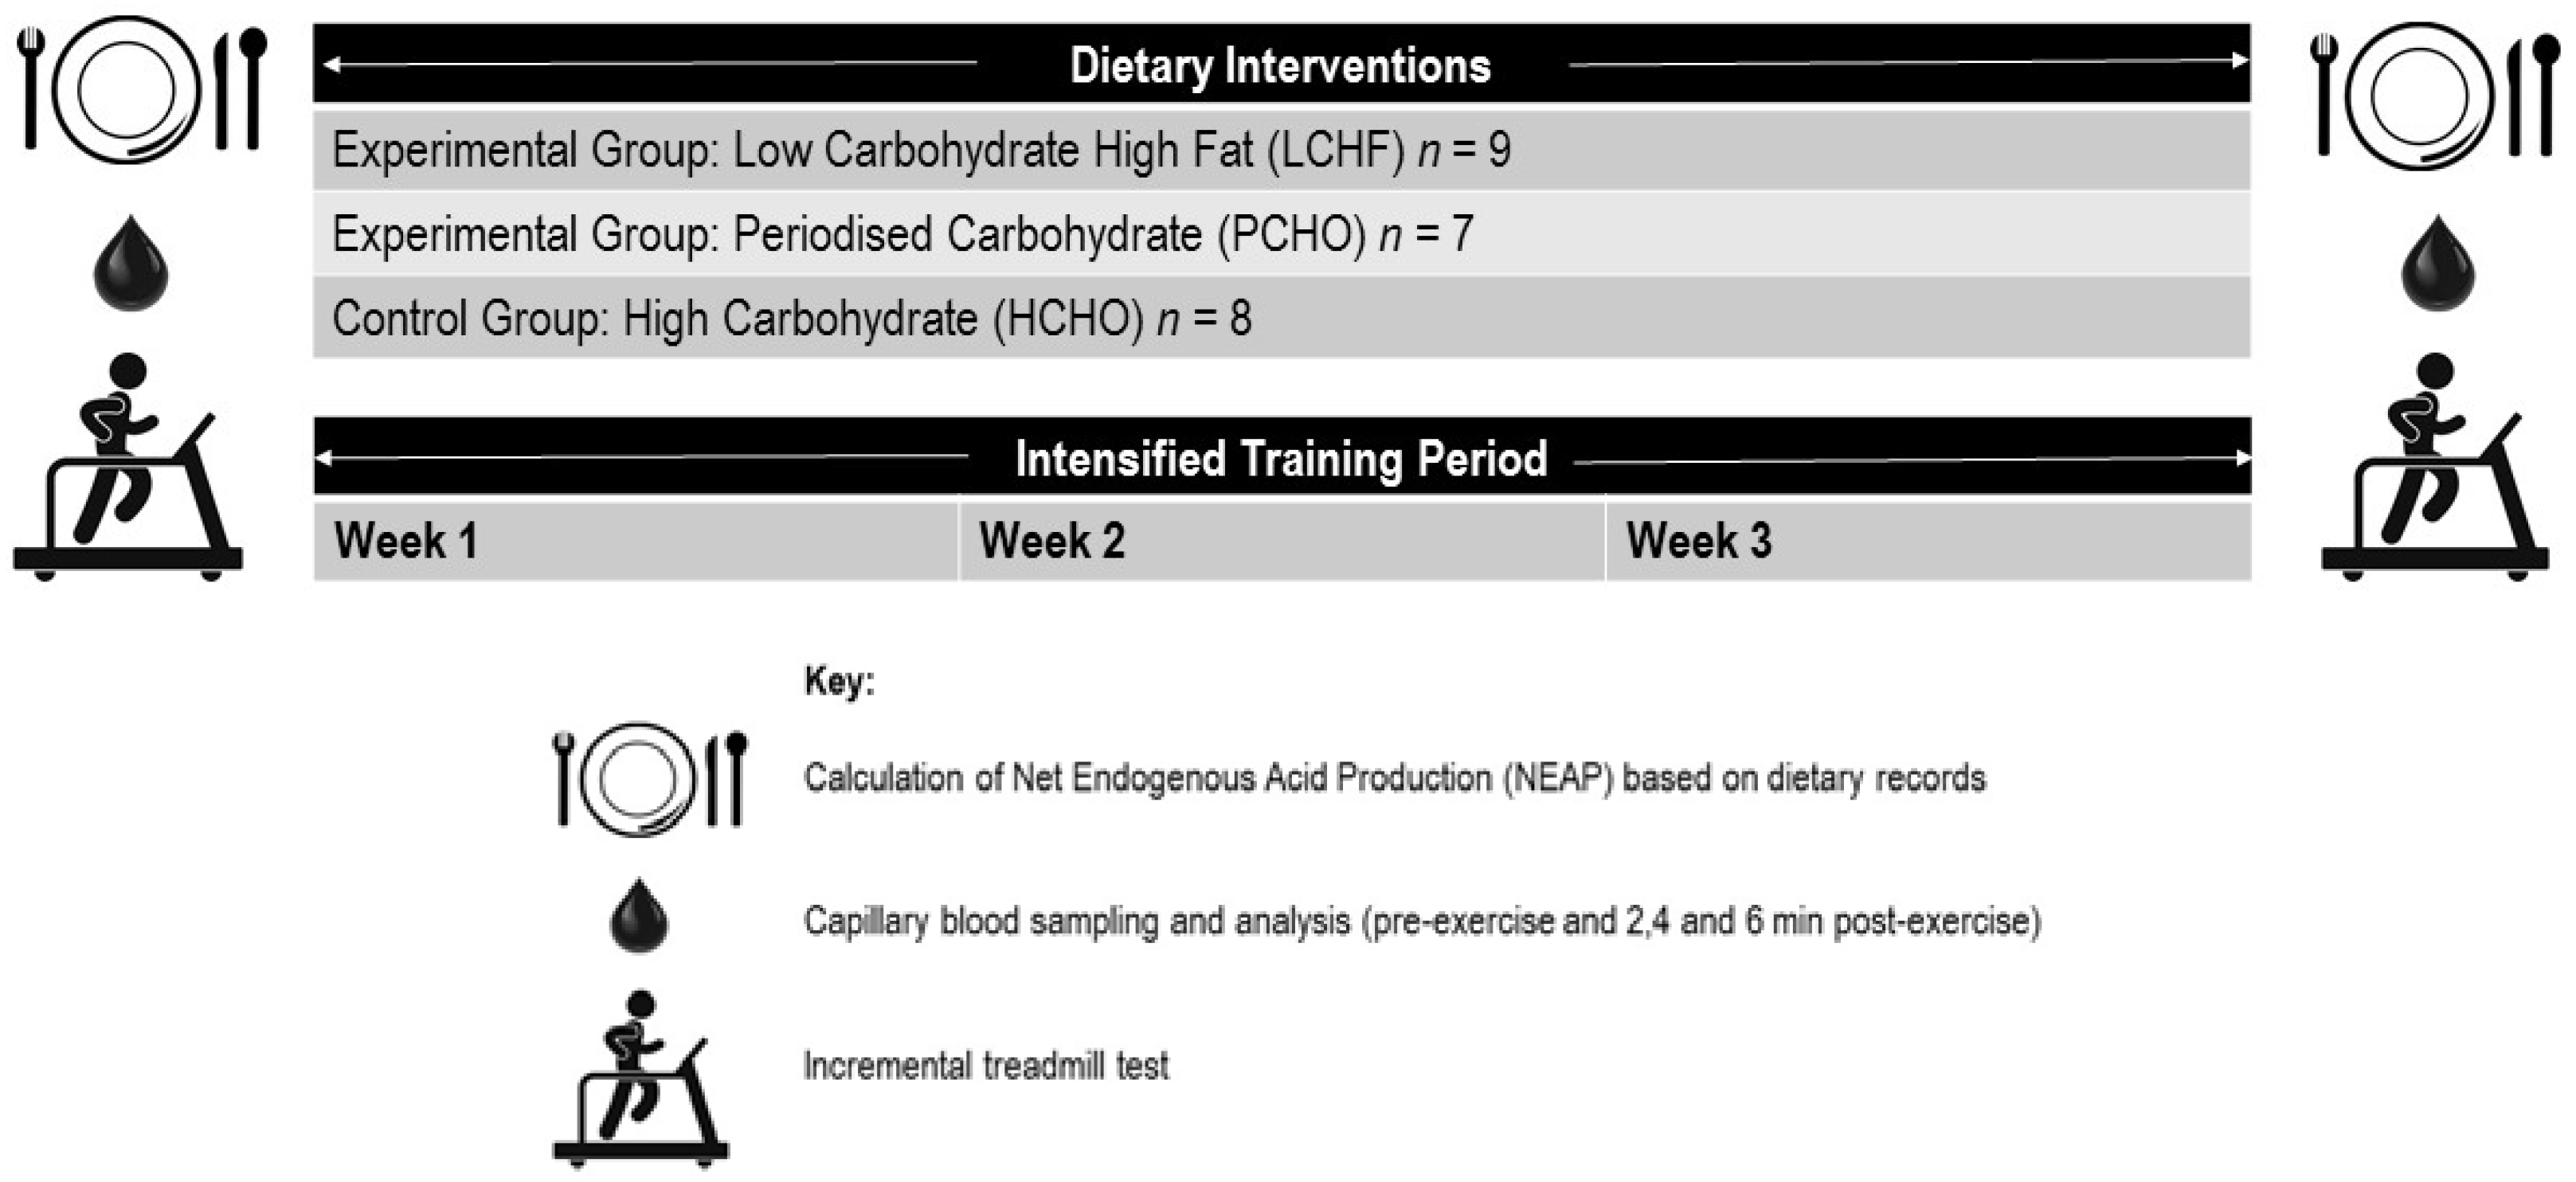 Nutrients | Free Full-Text | Chronic Ketogenic Low Carbohydrate High Fat Diet Has Minimal ...